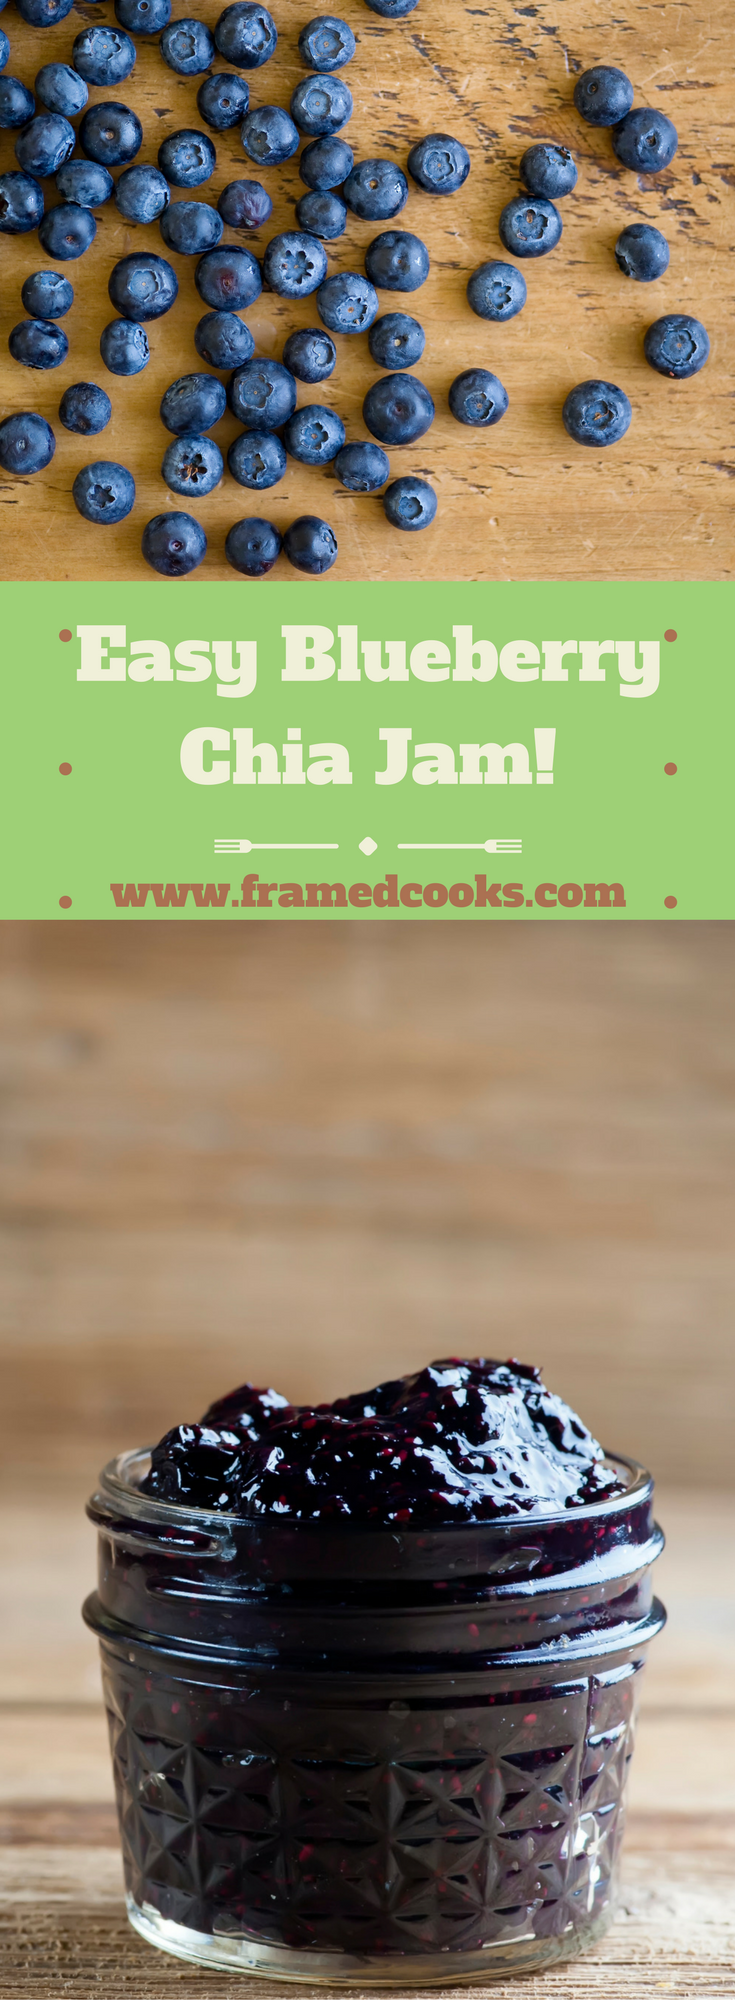 Got fresh summertime blueberries?  Then you are all set to make your very own easy blueberry chia jam!  That's right...chia seeds are the secret!